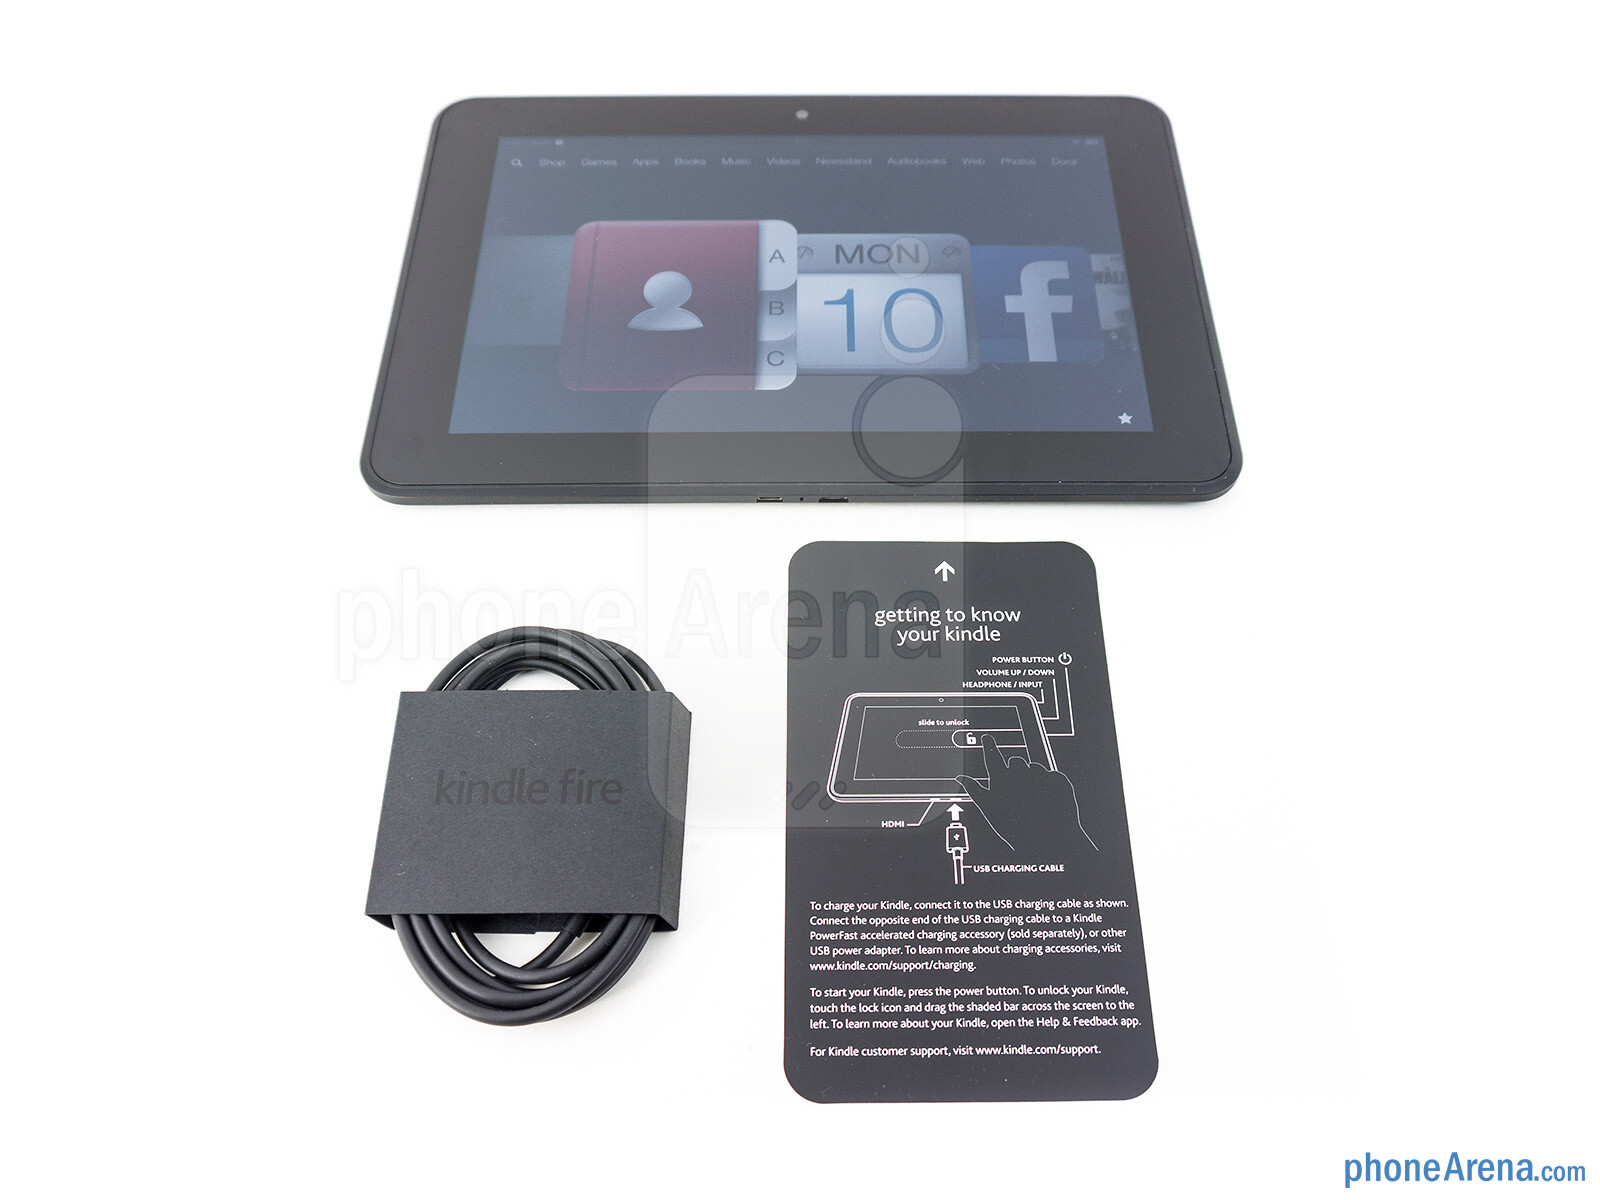 Amazon kindle fire hd 89 review publicscrutiny Image collections